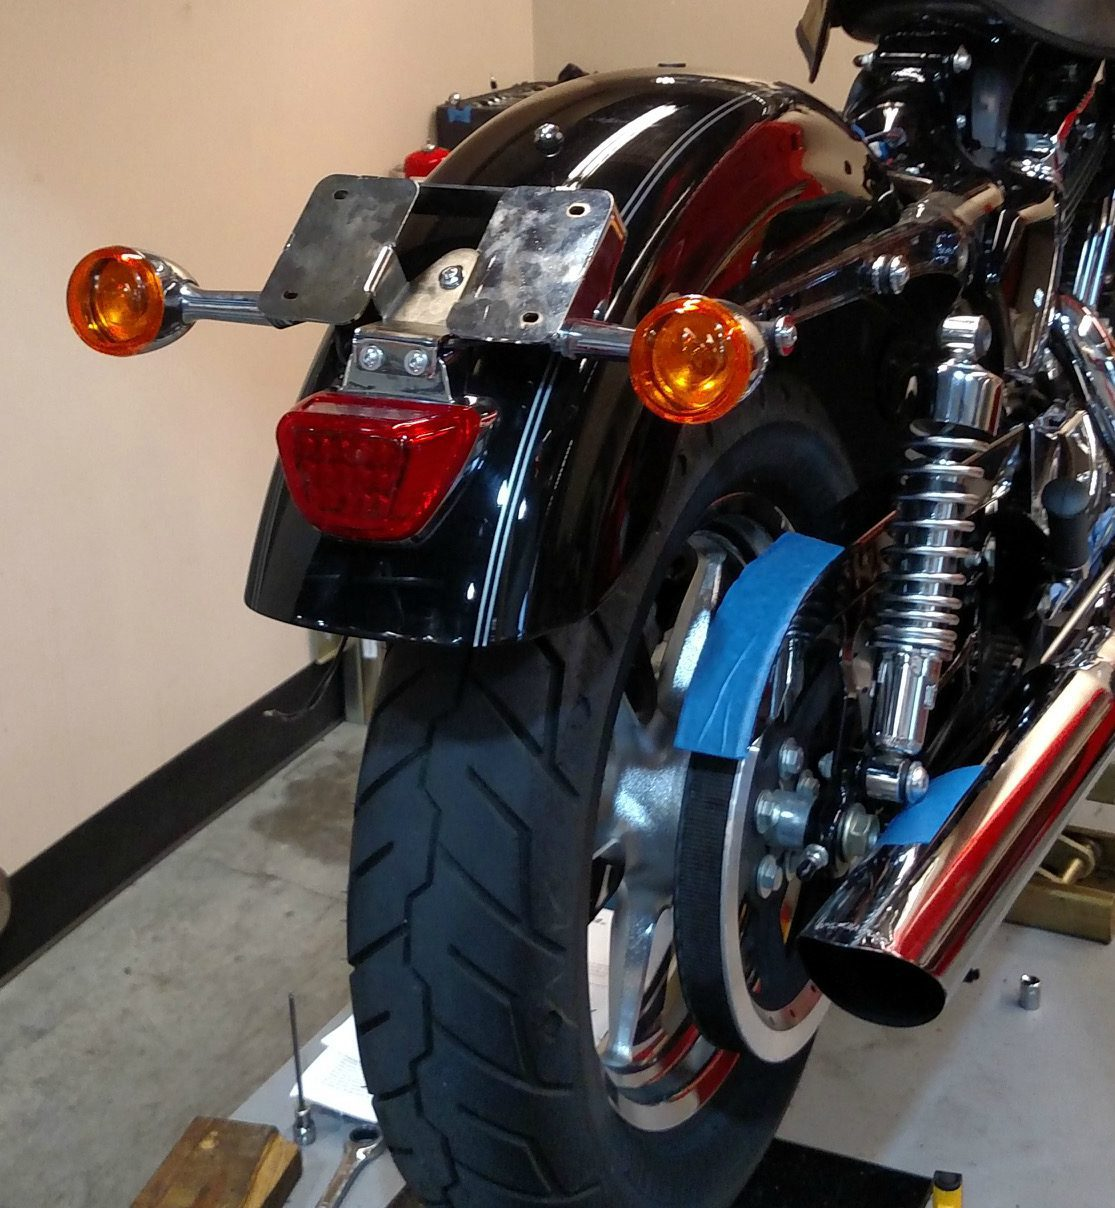 Turn signal relocation kit for Sportster XL1200C